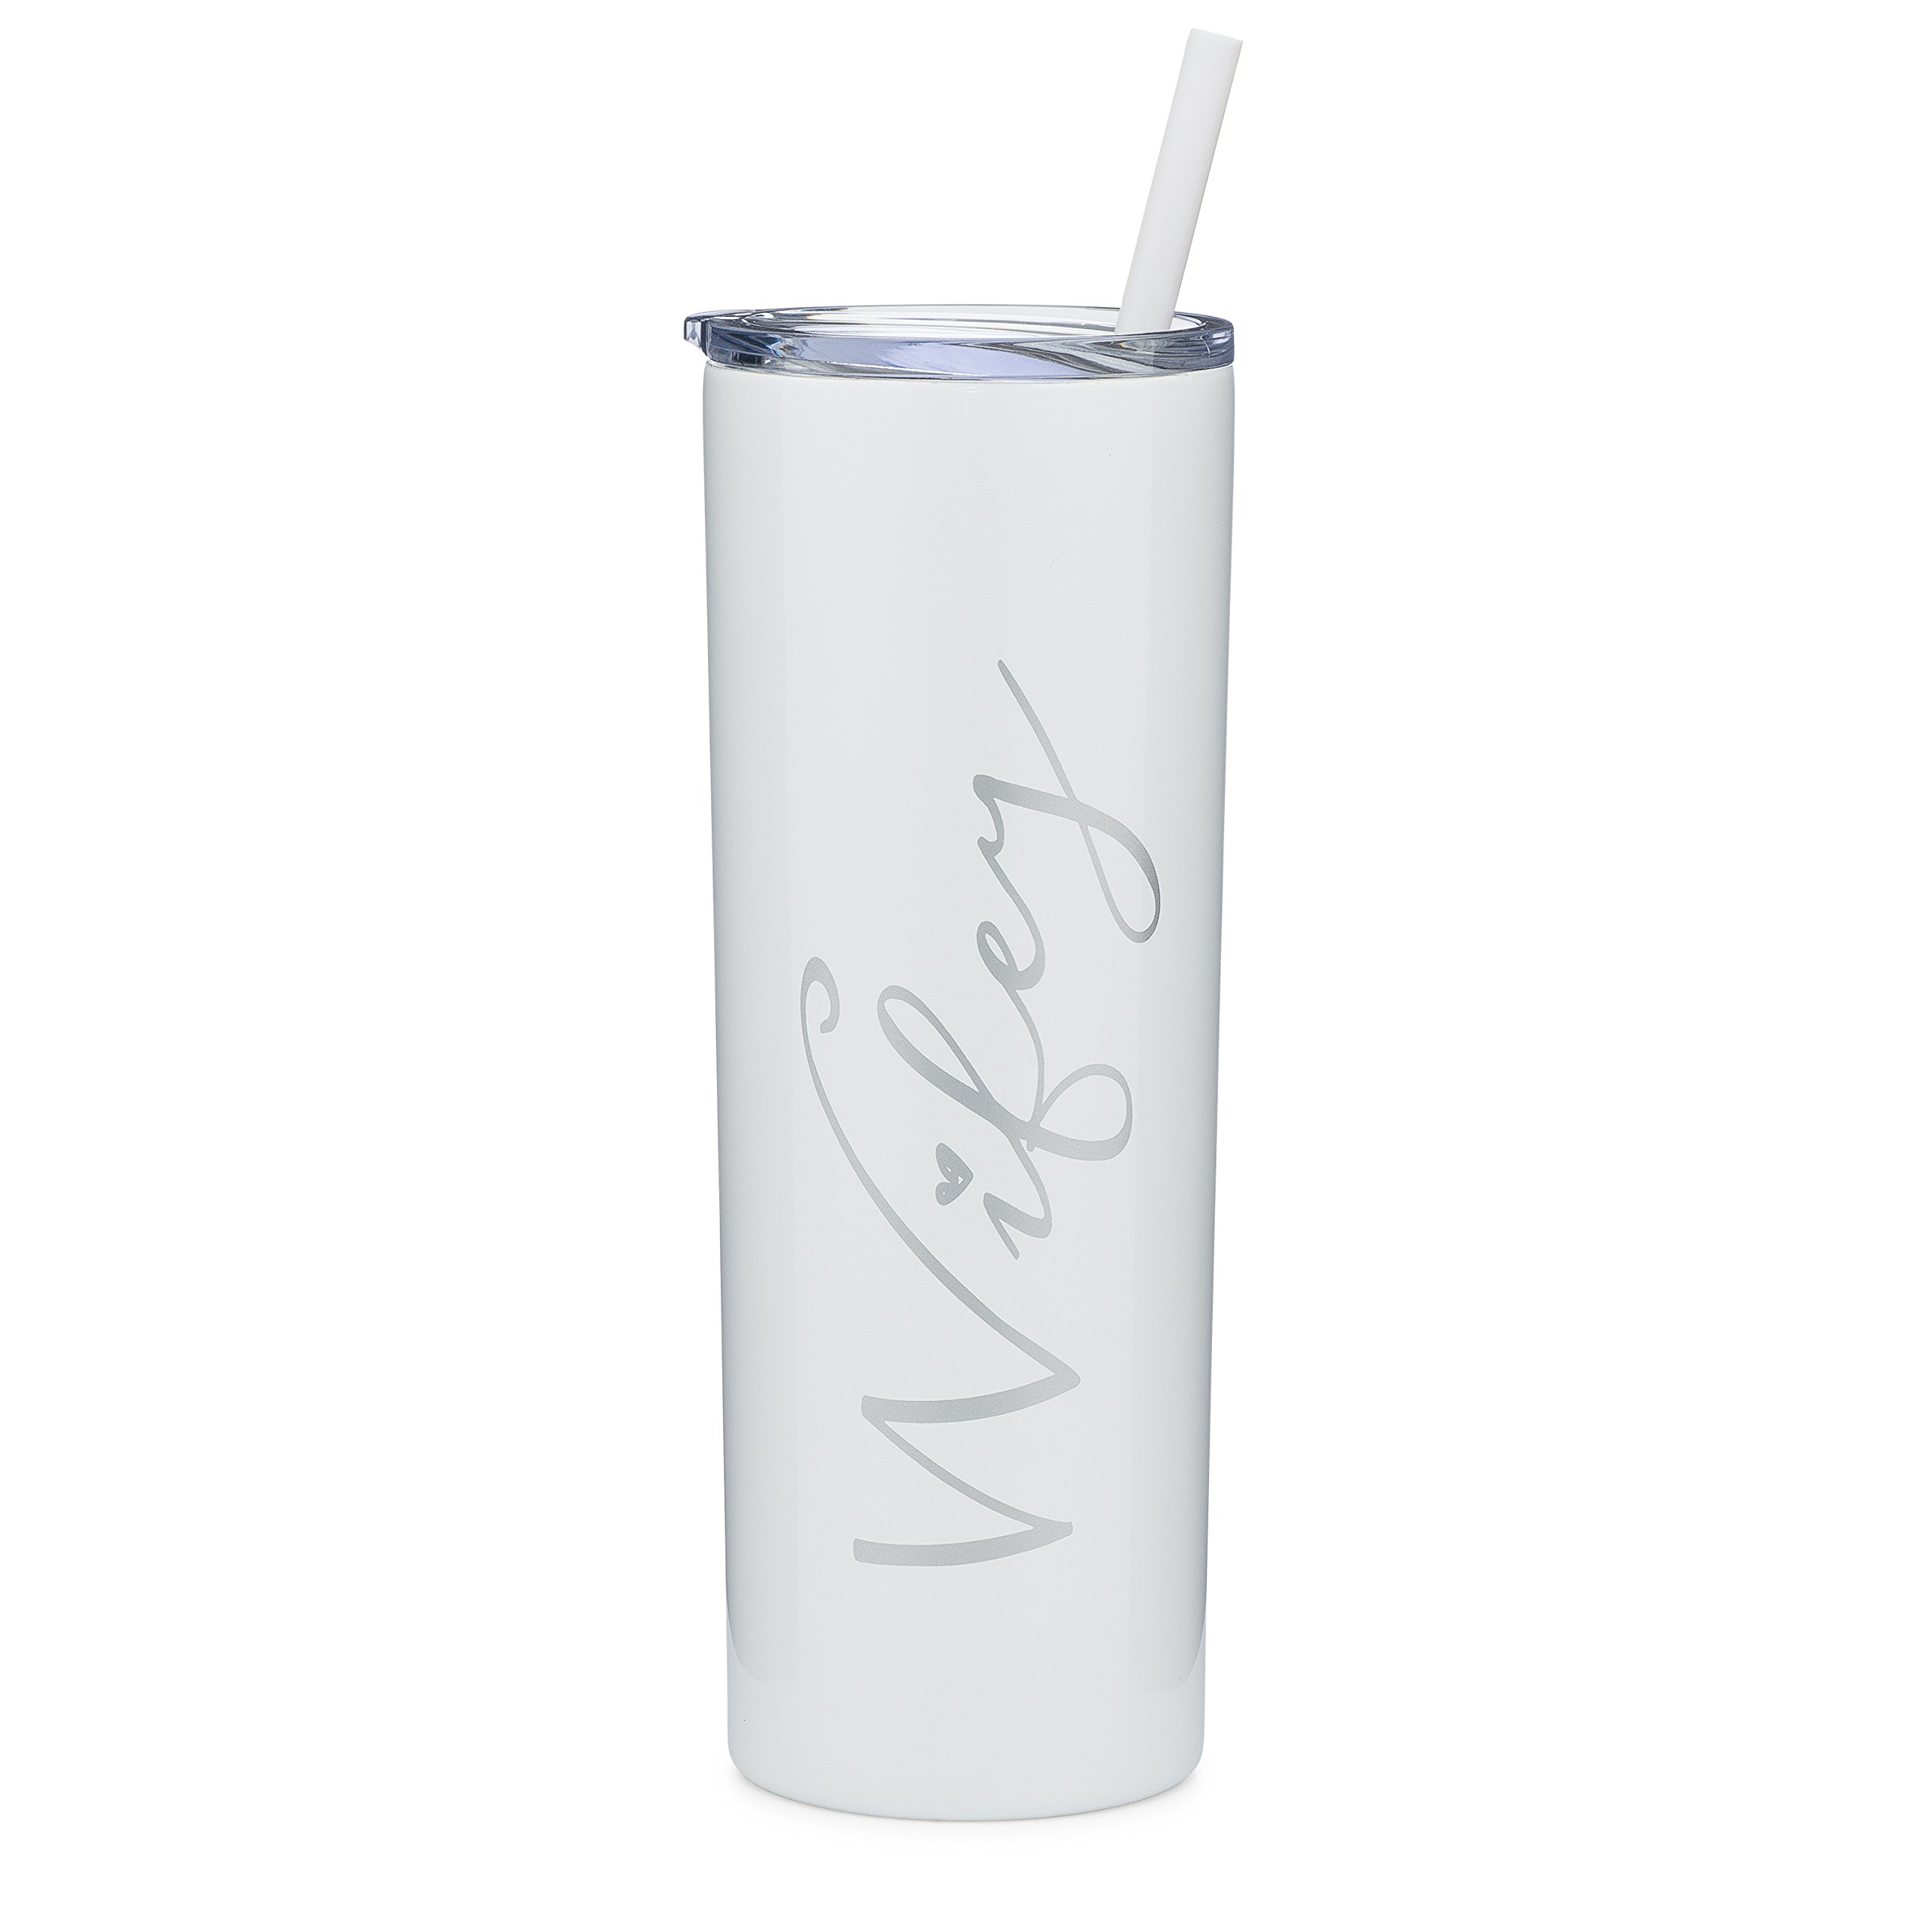 Wifey - 20 oz Stainless Steel Skinny Insulated Tumbler with Lid and Straw - Wife Gift, Bride Gift, Engagement Gift